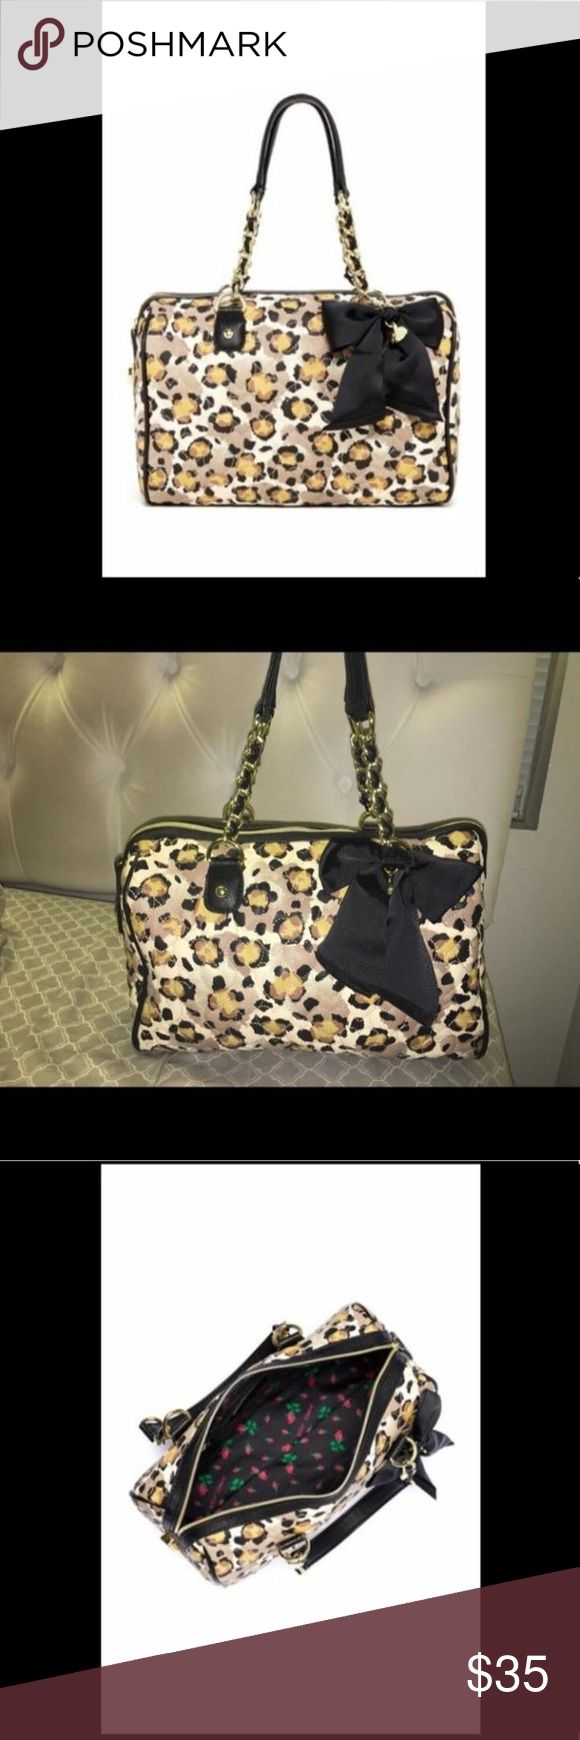 """Betsey Johnson Be My Sweetheart Satchel Betsy Johnson - The Be My Sweetheart Satchel in leopard print. It's a very flexible bag, can fit many things inside. Only used twice Originally $65!!! Shipping included in price.  Details: - Dual top chain accented handles - Zip top closure - Interior features zip wall pocket and 2 media pockets - Approx. 11"""" H x 13"""" W x 5"""" D - Approx. 5"""" handle drop  Materials: PU exterior, fabric lining Care Wipe with dry cloth Betsey Johnson Bags Satchels"""